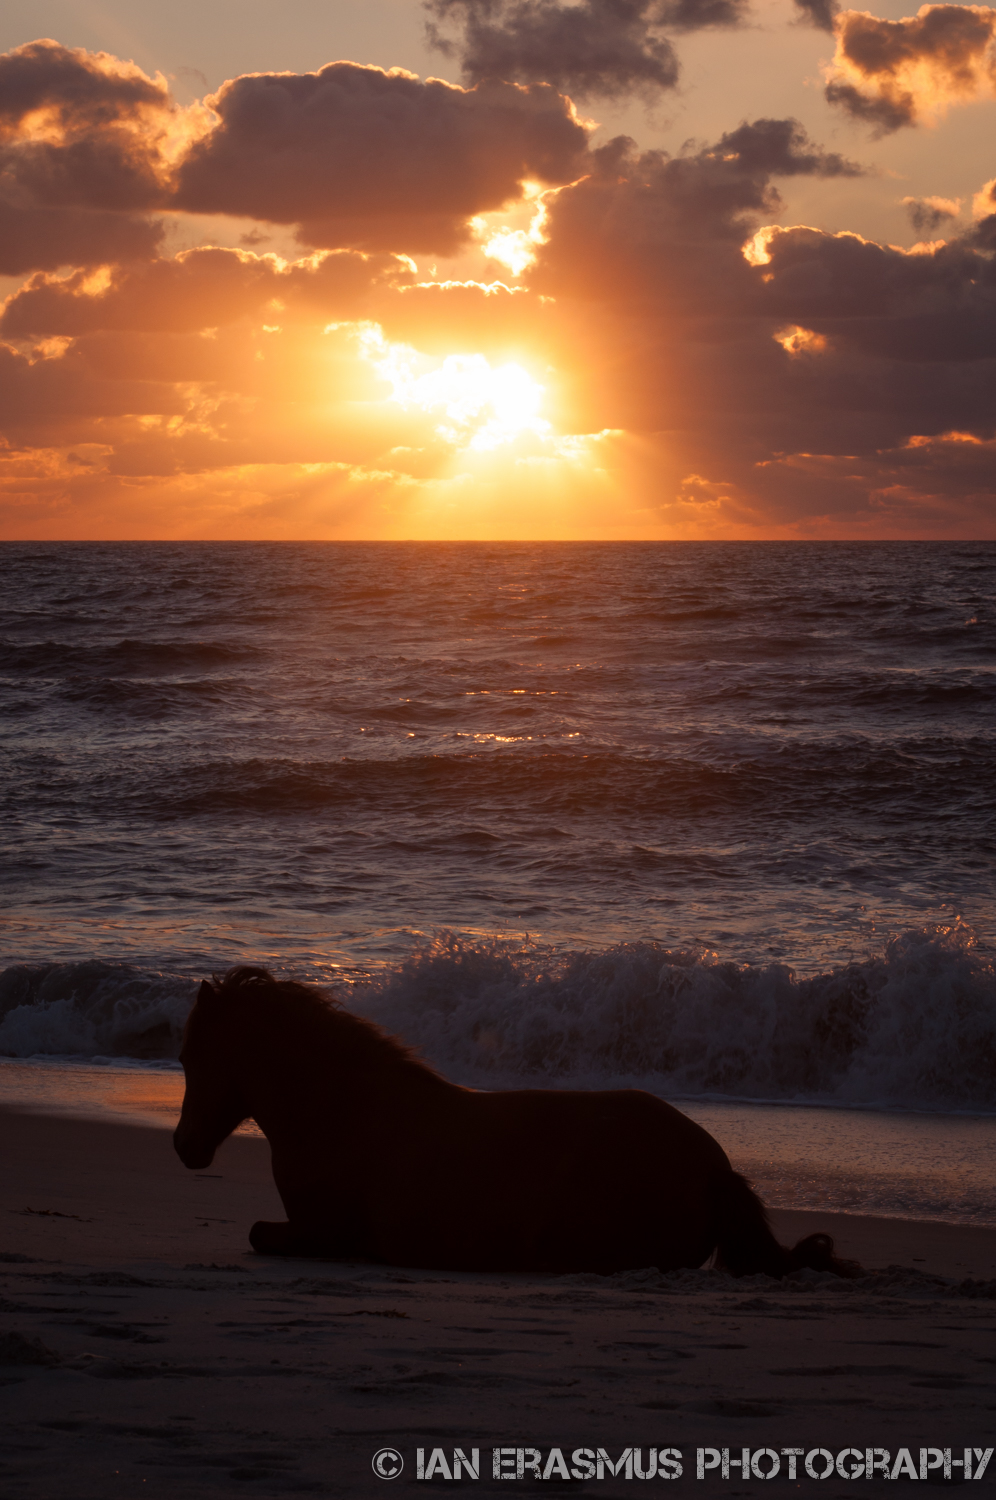 There were two horses down at the beach, and they both just stood there, staring out towards the horizon, never moving except to lie down. Then, once the sun was up, the bolted, and playfully ran off down the beach. Horses are weird.